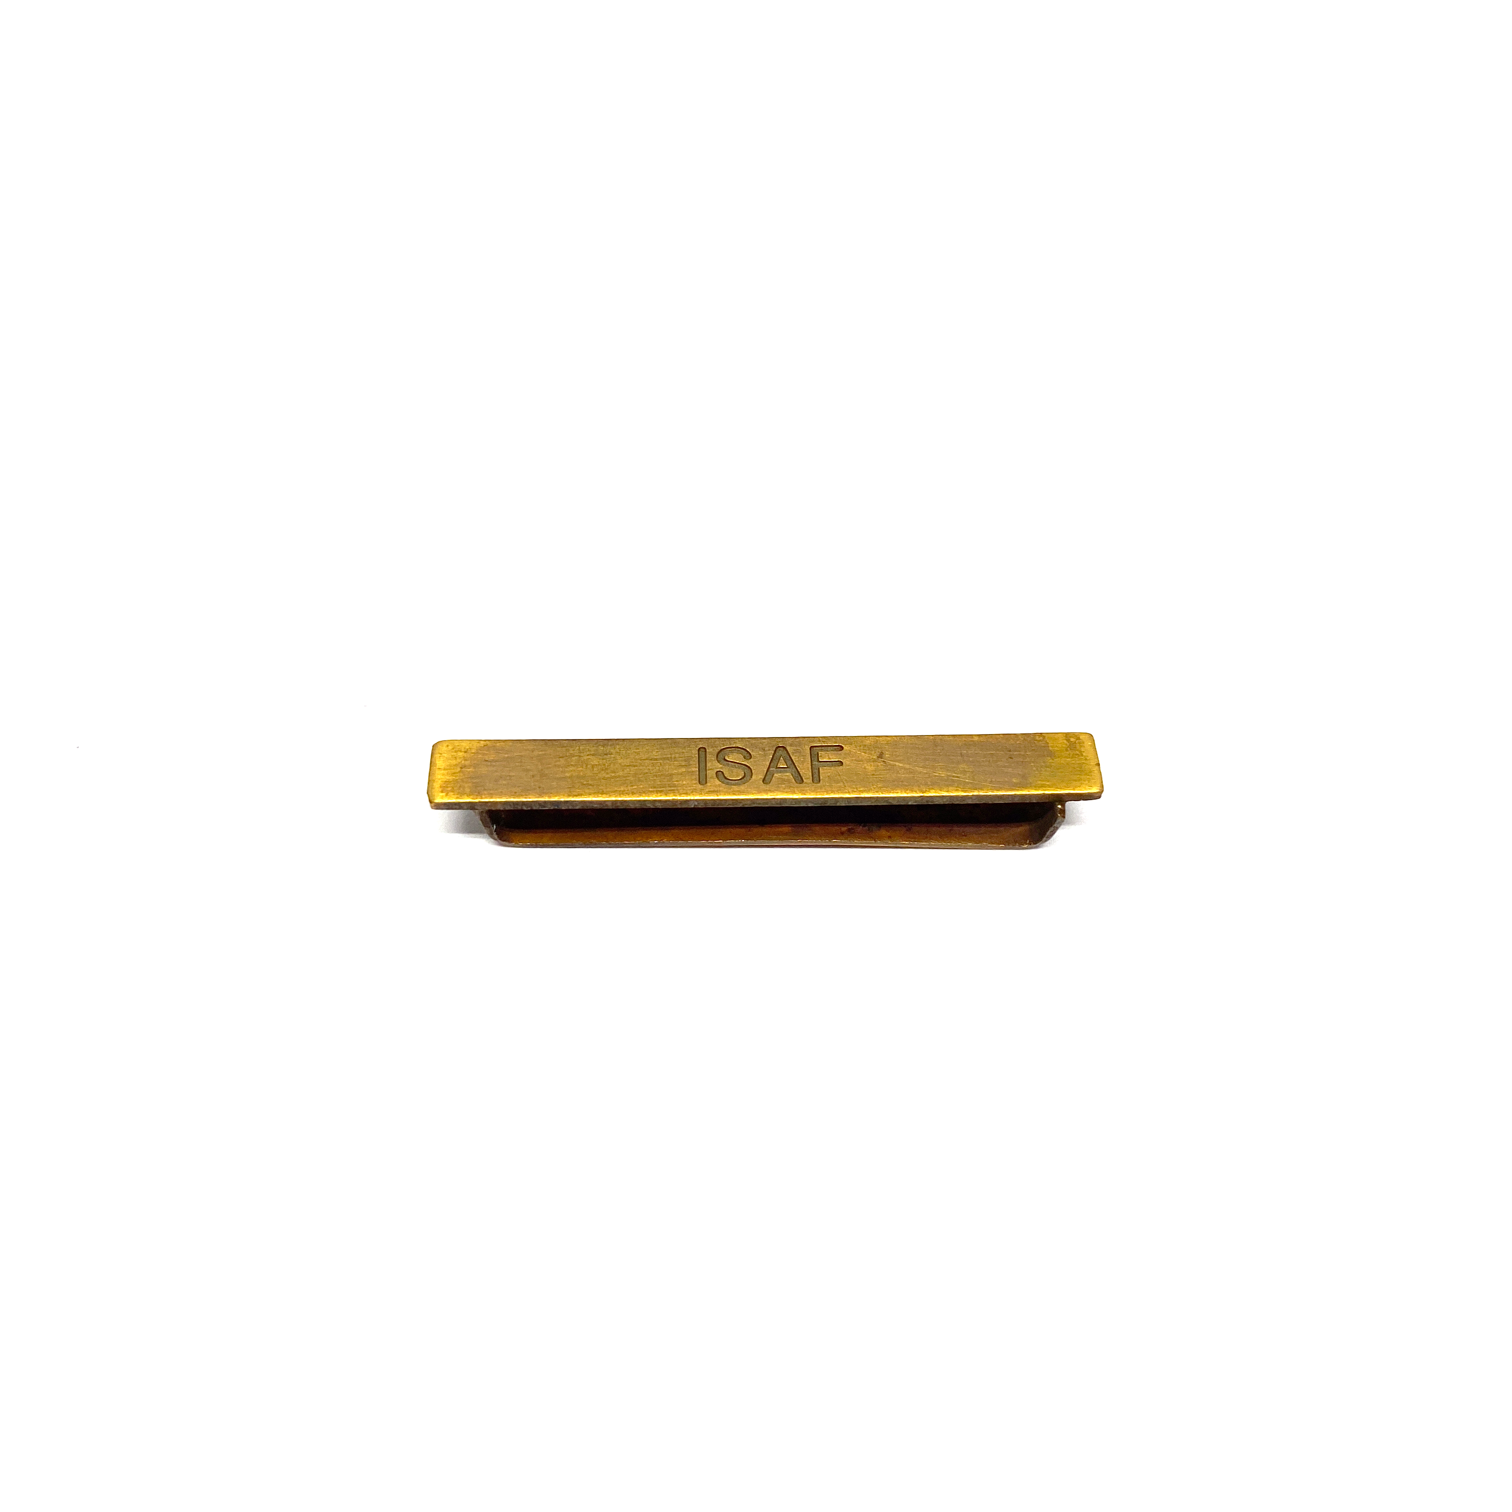 Bar ISAF for military medals